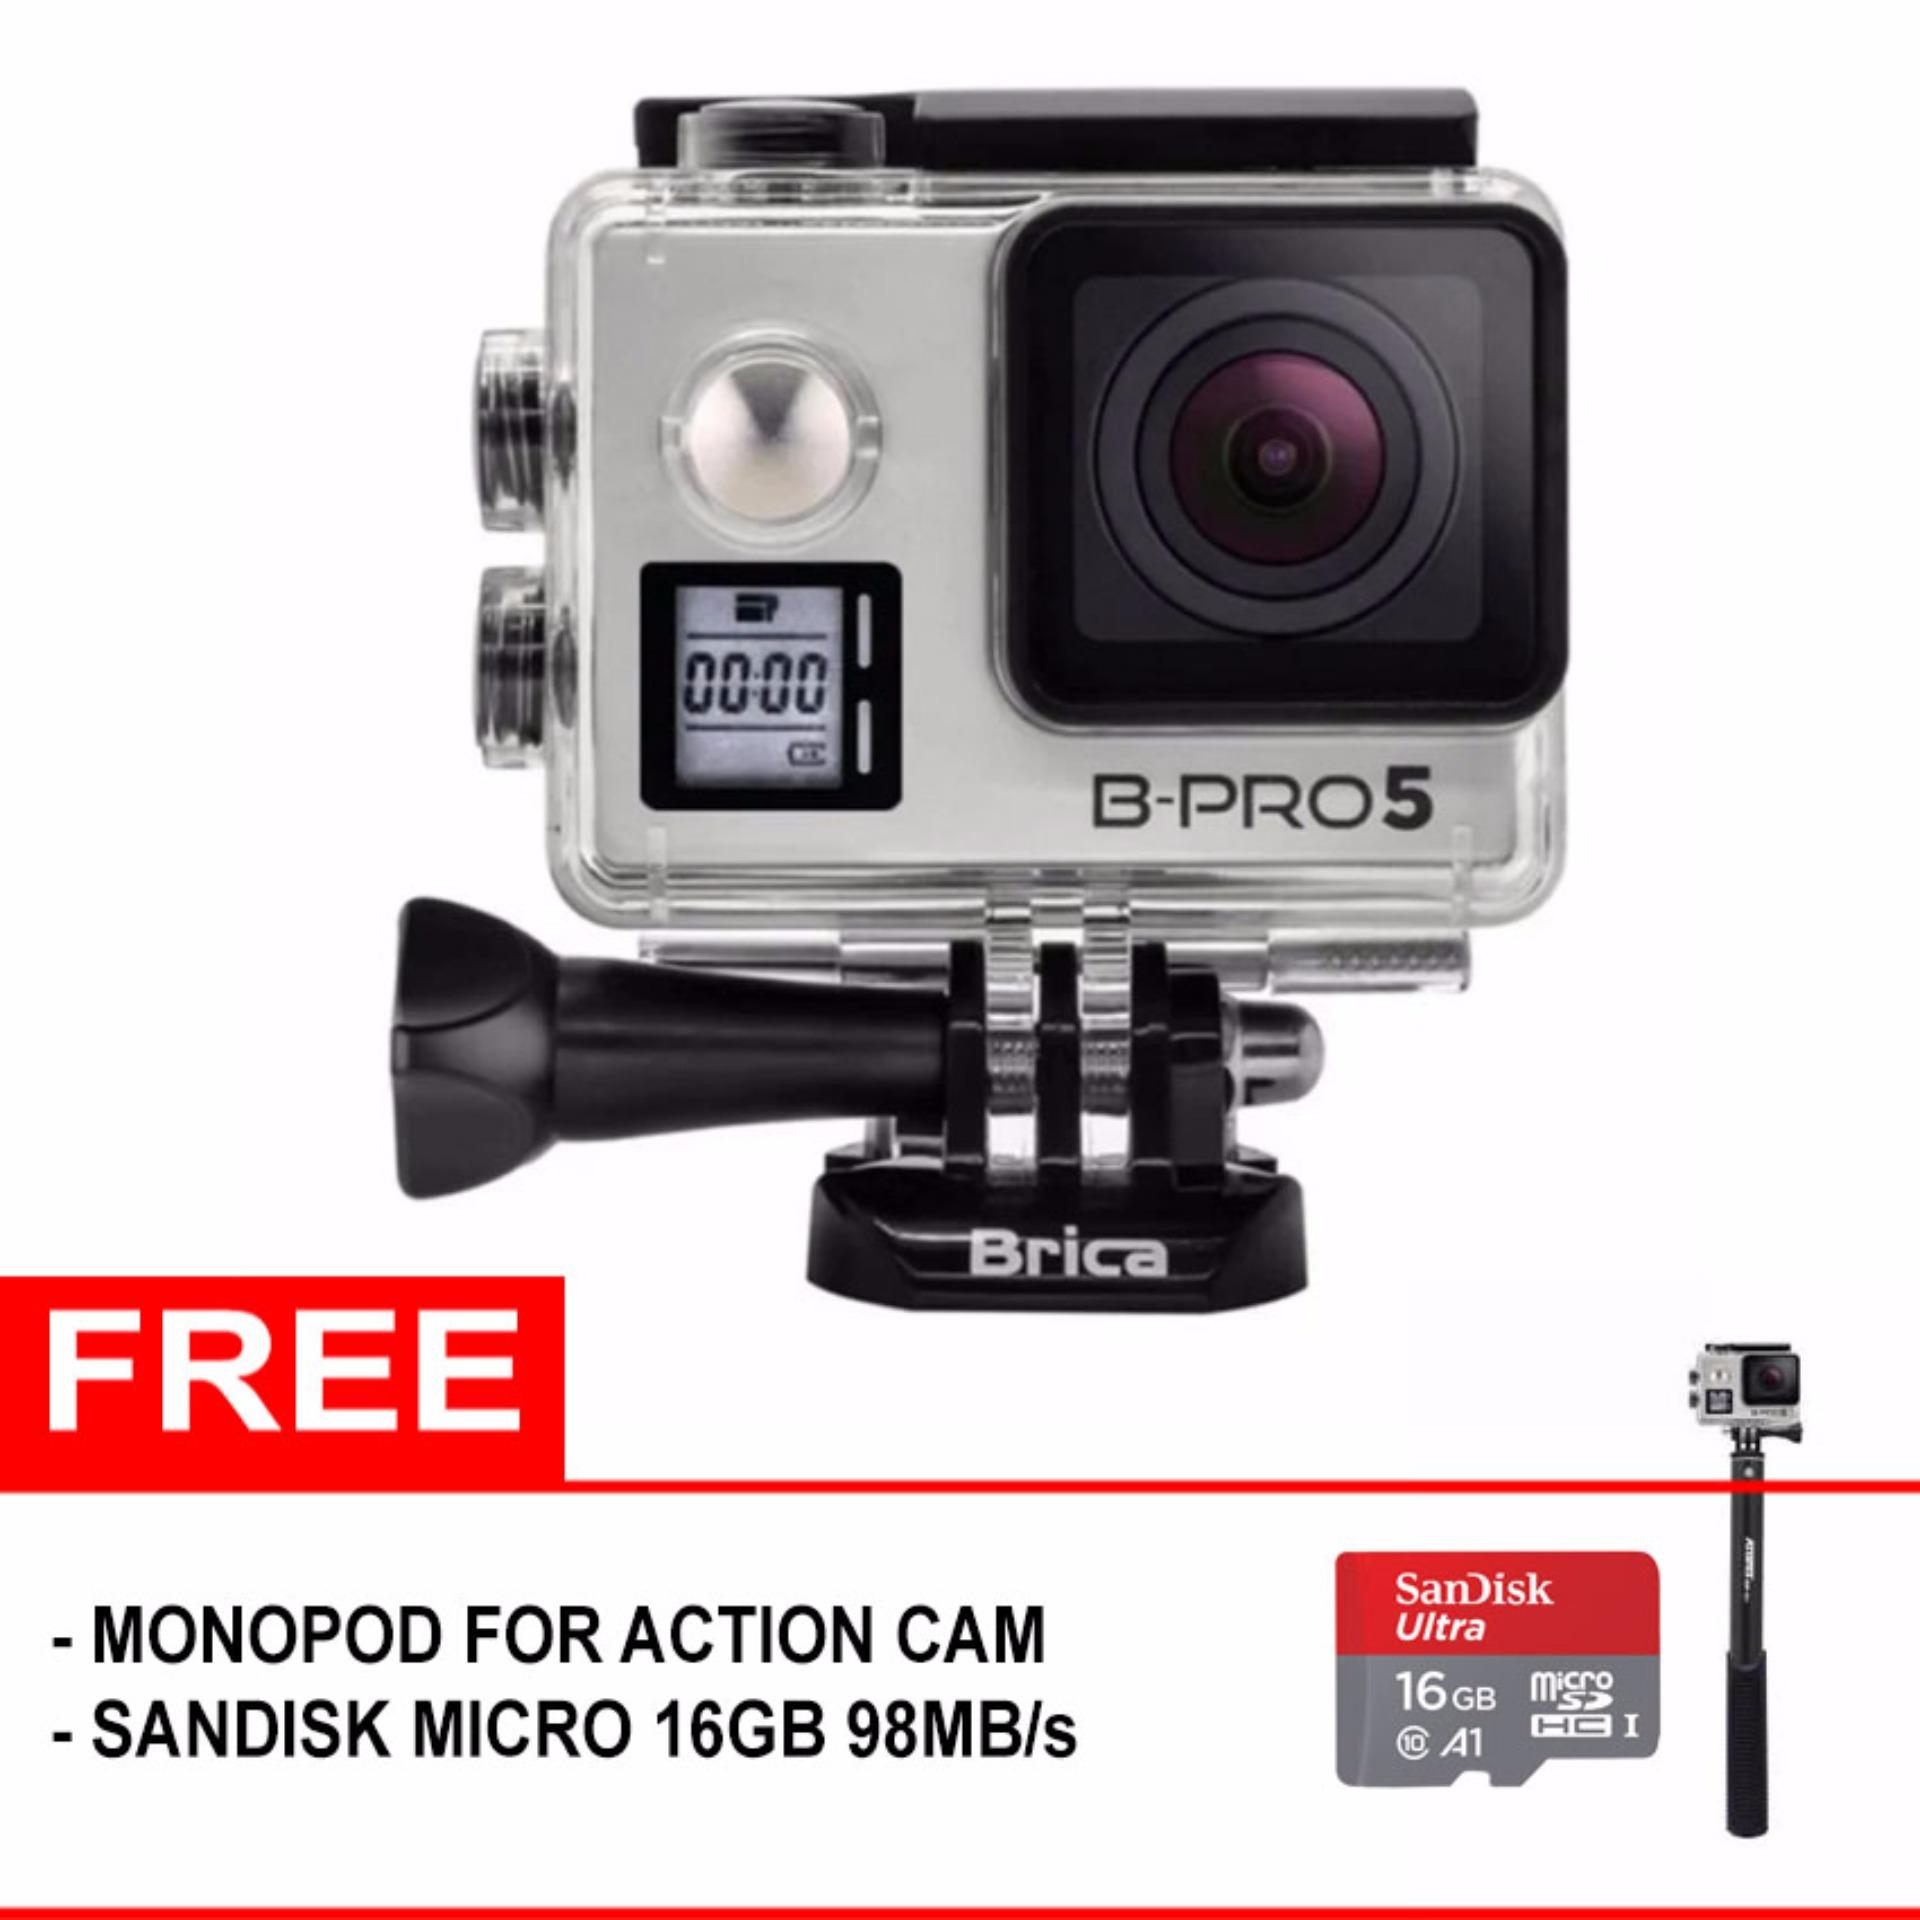 BRICA B-PRO 5 Alpha Edition Version 2 Mark IIs (AE2s) 4K WIFI Action Camera  - (Free Memory SDHC 16GB + Monopod Action Cam)